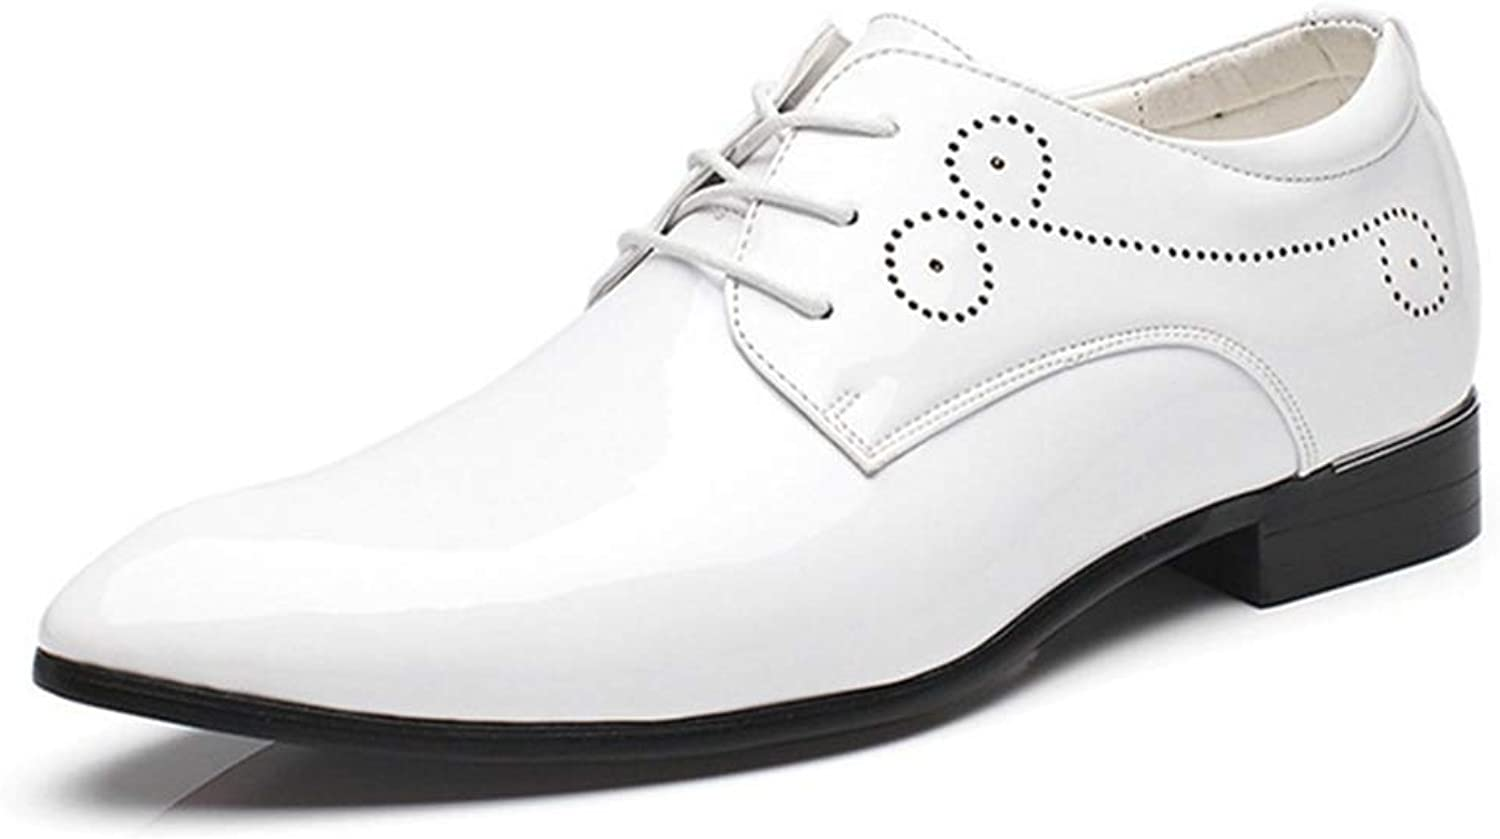 Men Dress shoes Lace-up Wedding Business Party Leather shoes Big Size 38-47